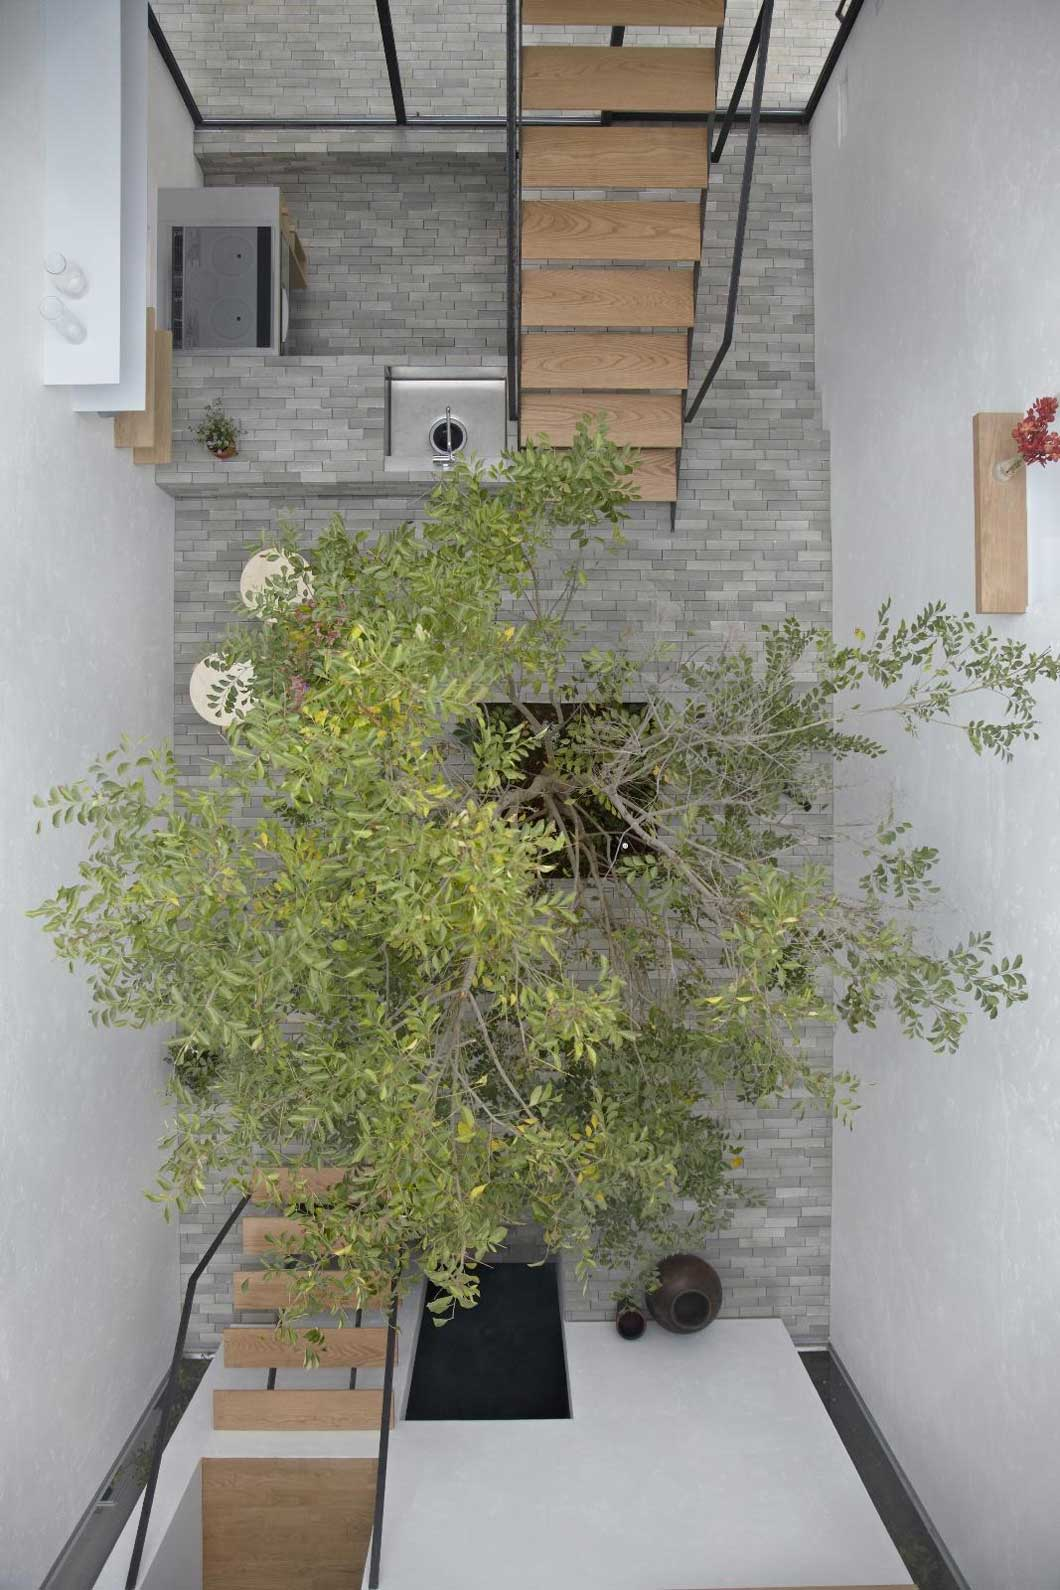 Minna no ie by Mamm Design | Yellowtrace